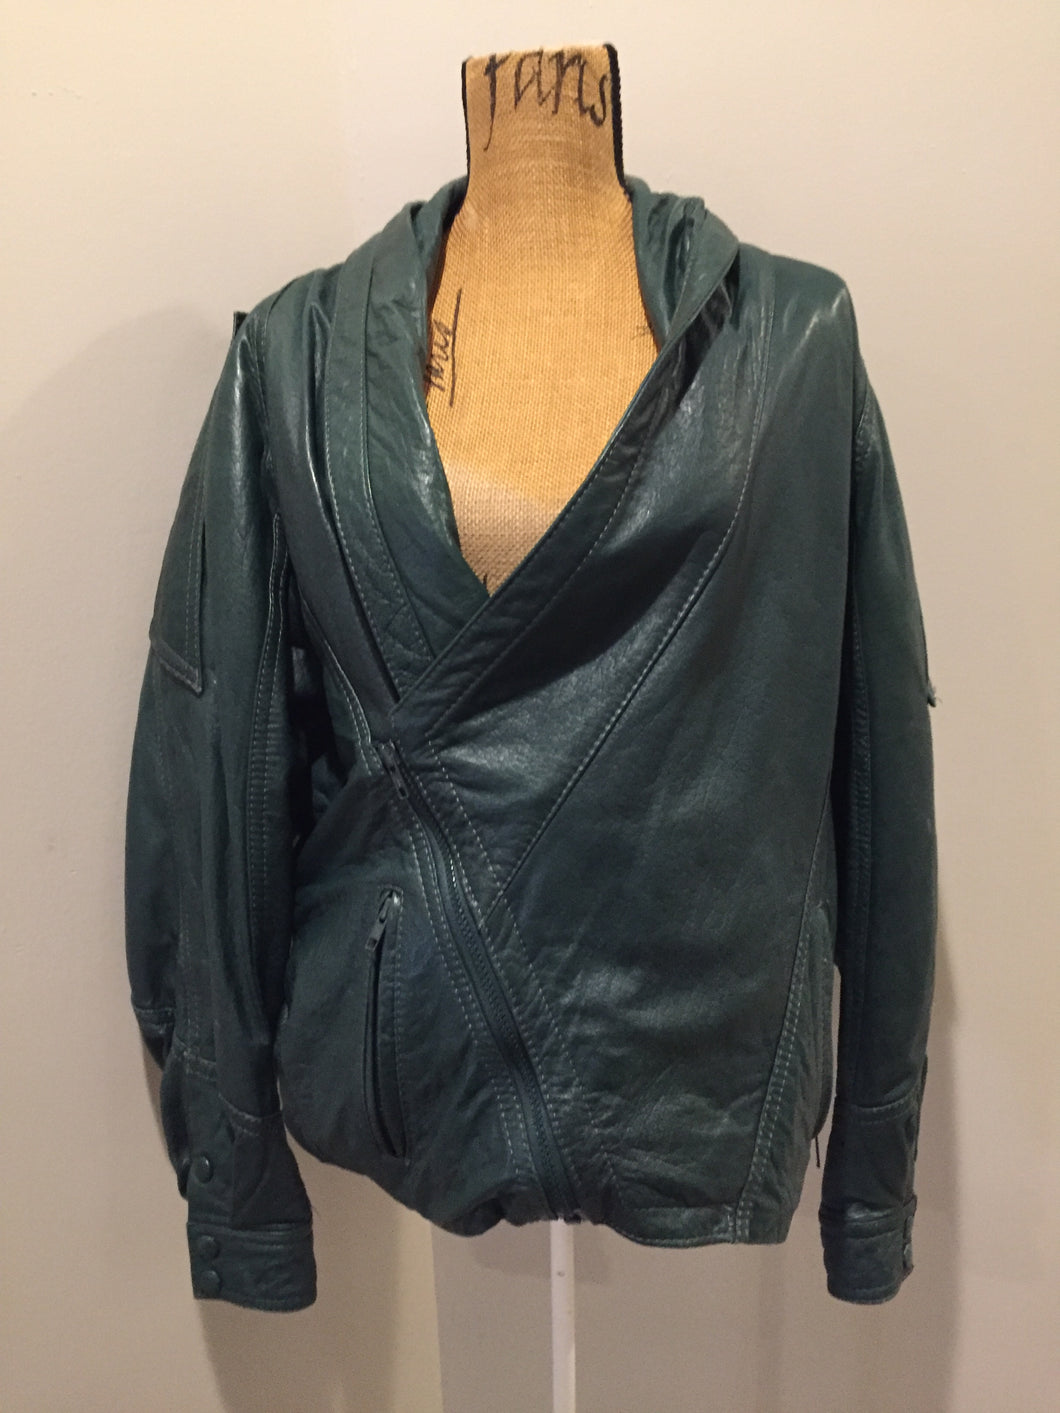 Leather Factory forest green 1980's leather jacket with unique shall collar, zipper and vertical pockets, Size XS.